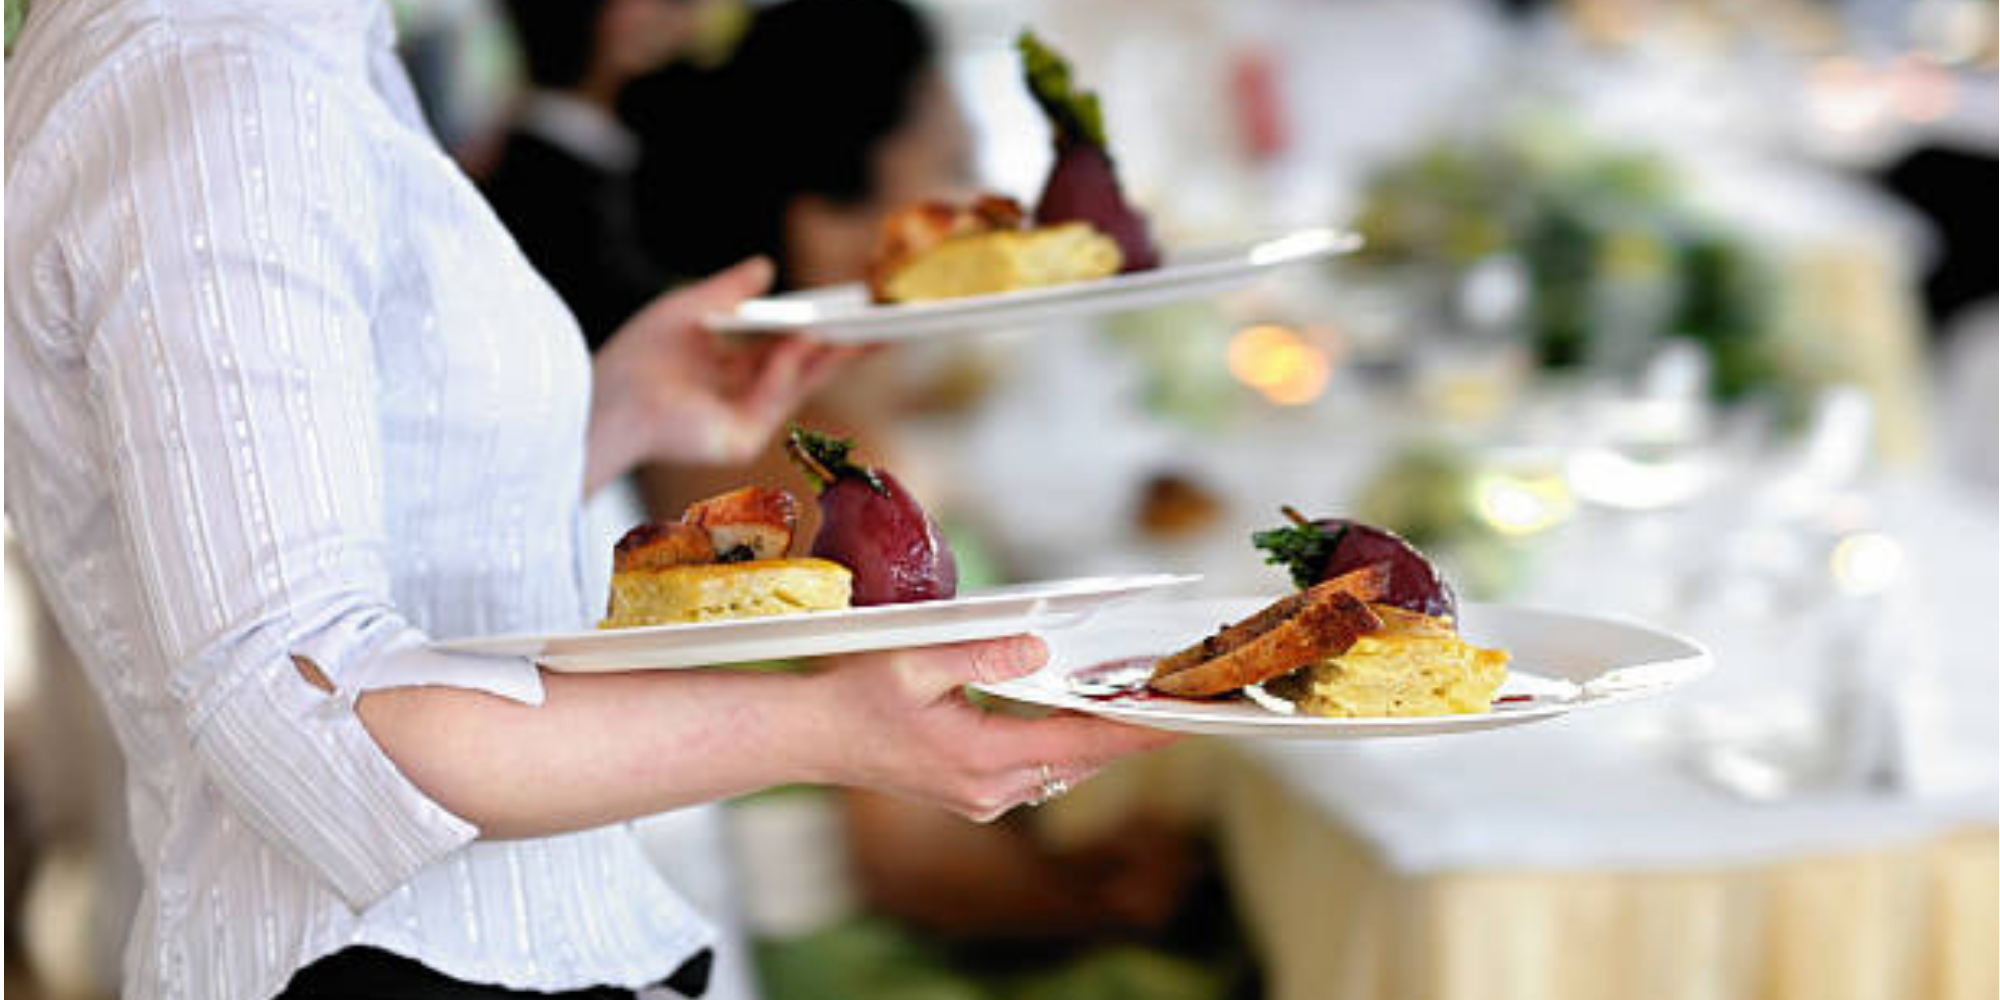 5 Key Tips to Portion Control and Protect Your Profit